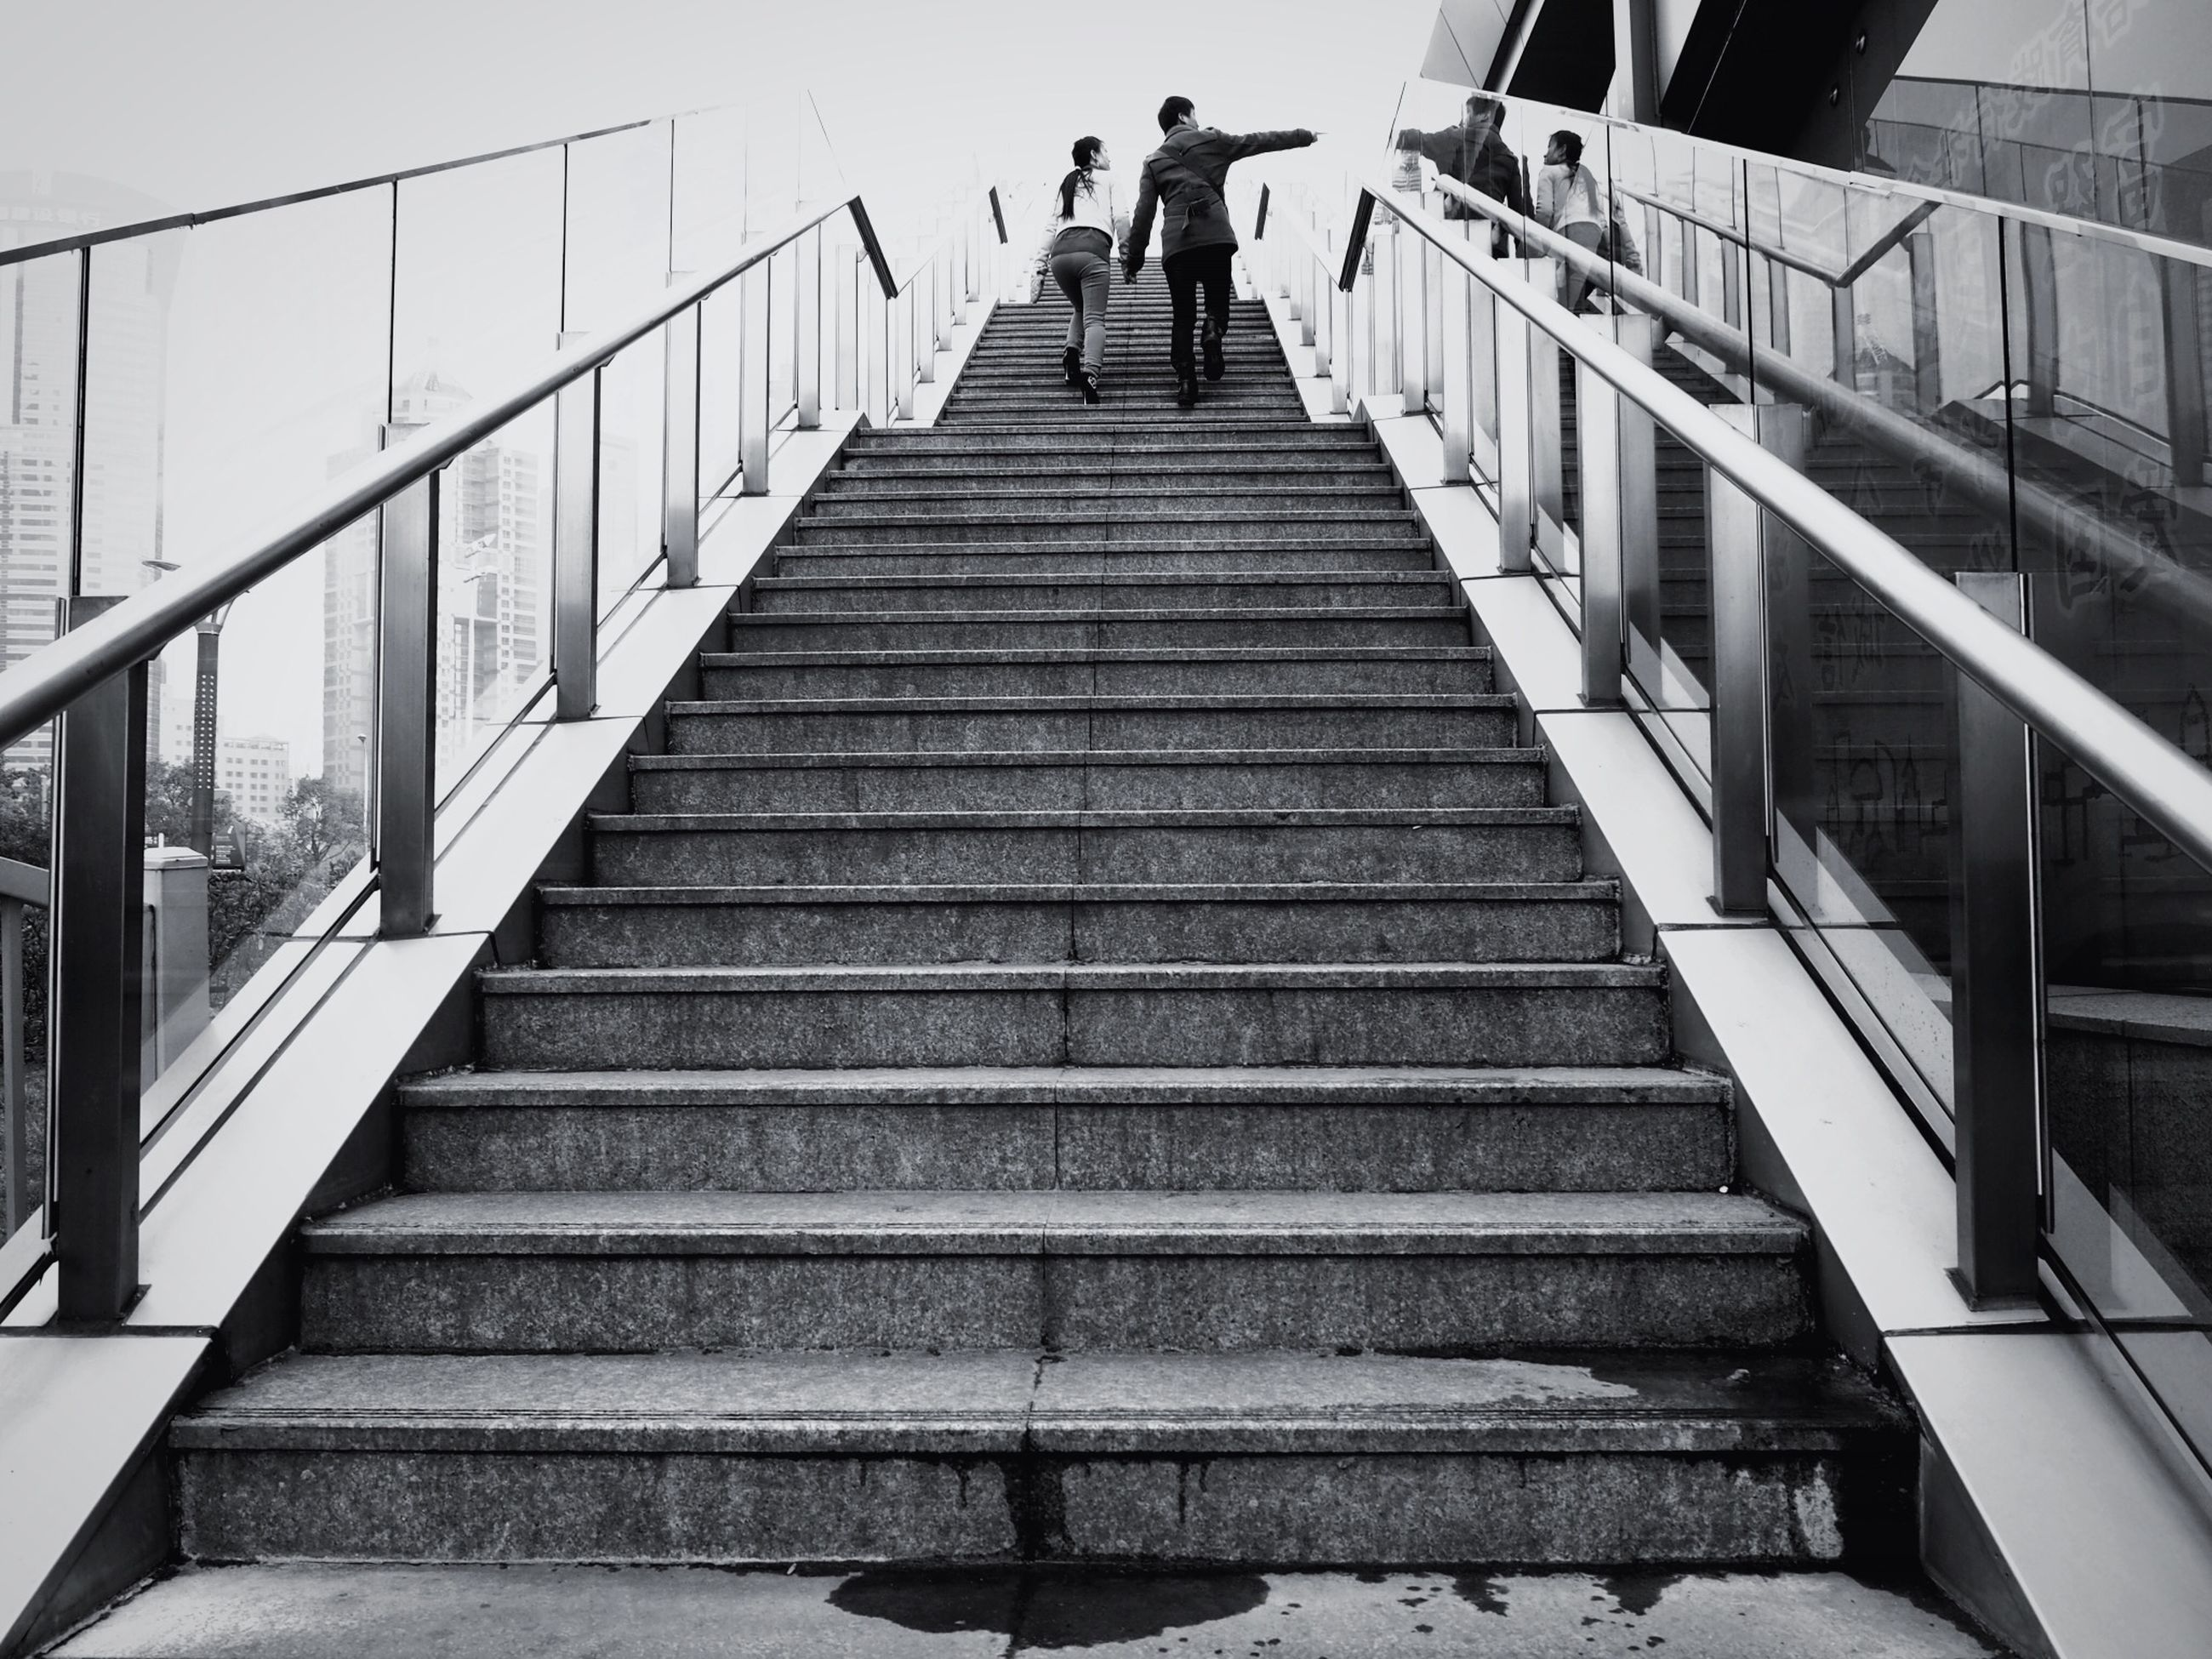 steps, steps and staircases, staircase, railing, men, architecture, built structure, the way forward, lifestyles, walking, stairs, low angle view, person, leisure activity, full length, moving up, building exterior, diminishing perspective